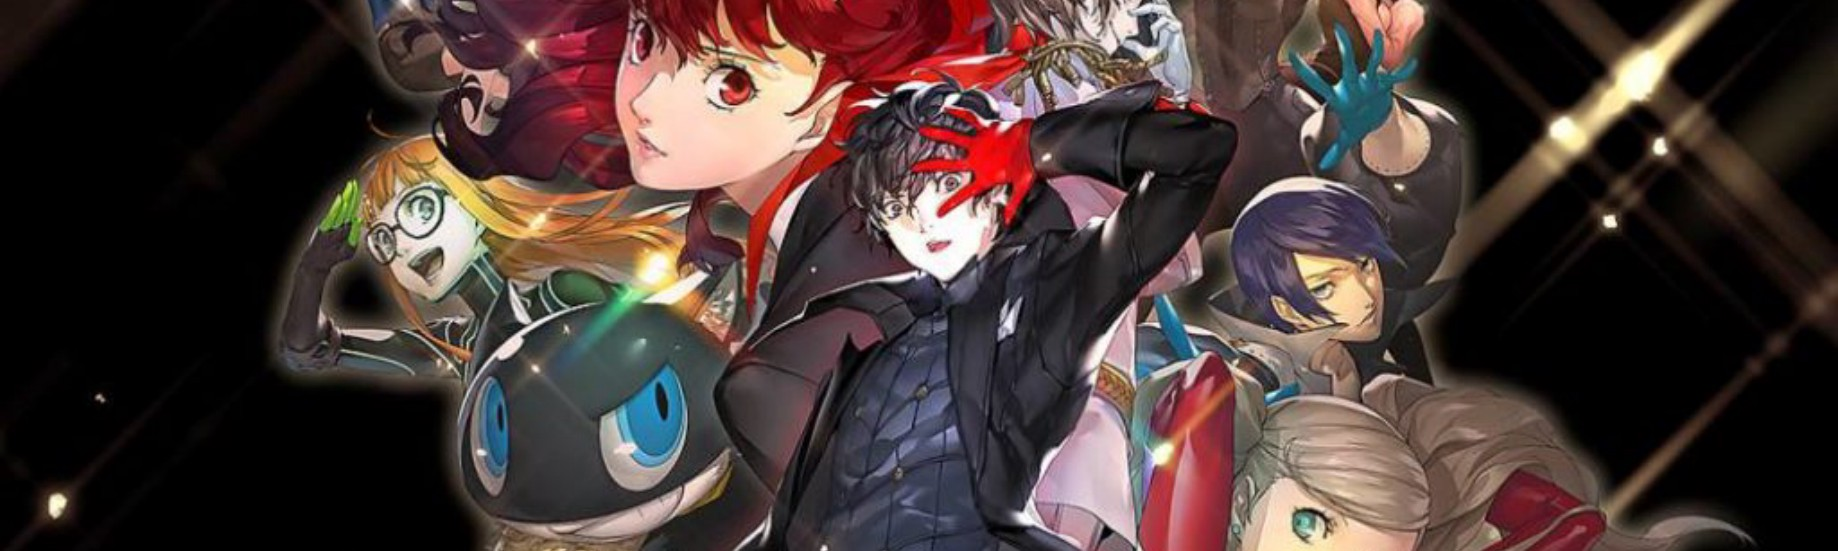 Persona 5 Royal Party Member Builds By Bainz Medium I draw marianne and marianne accessories. persona 5 royal party member builds